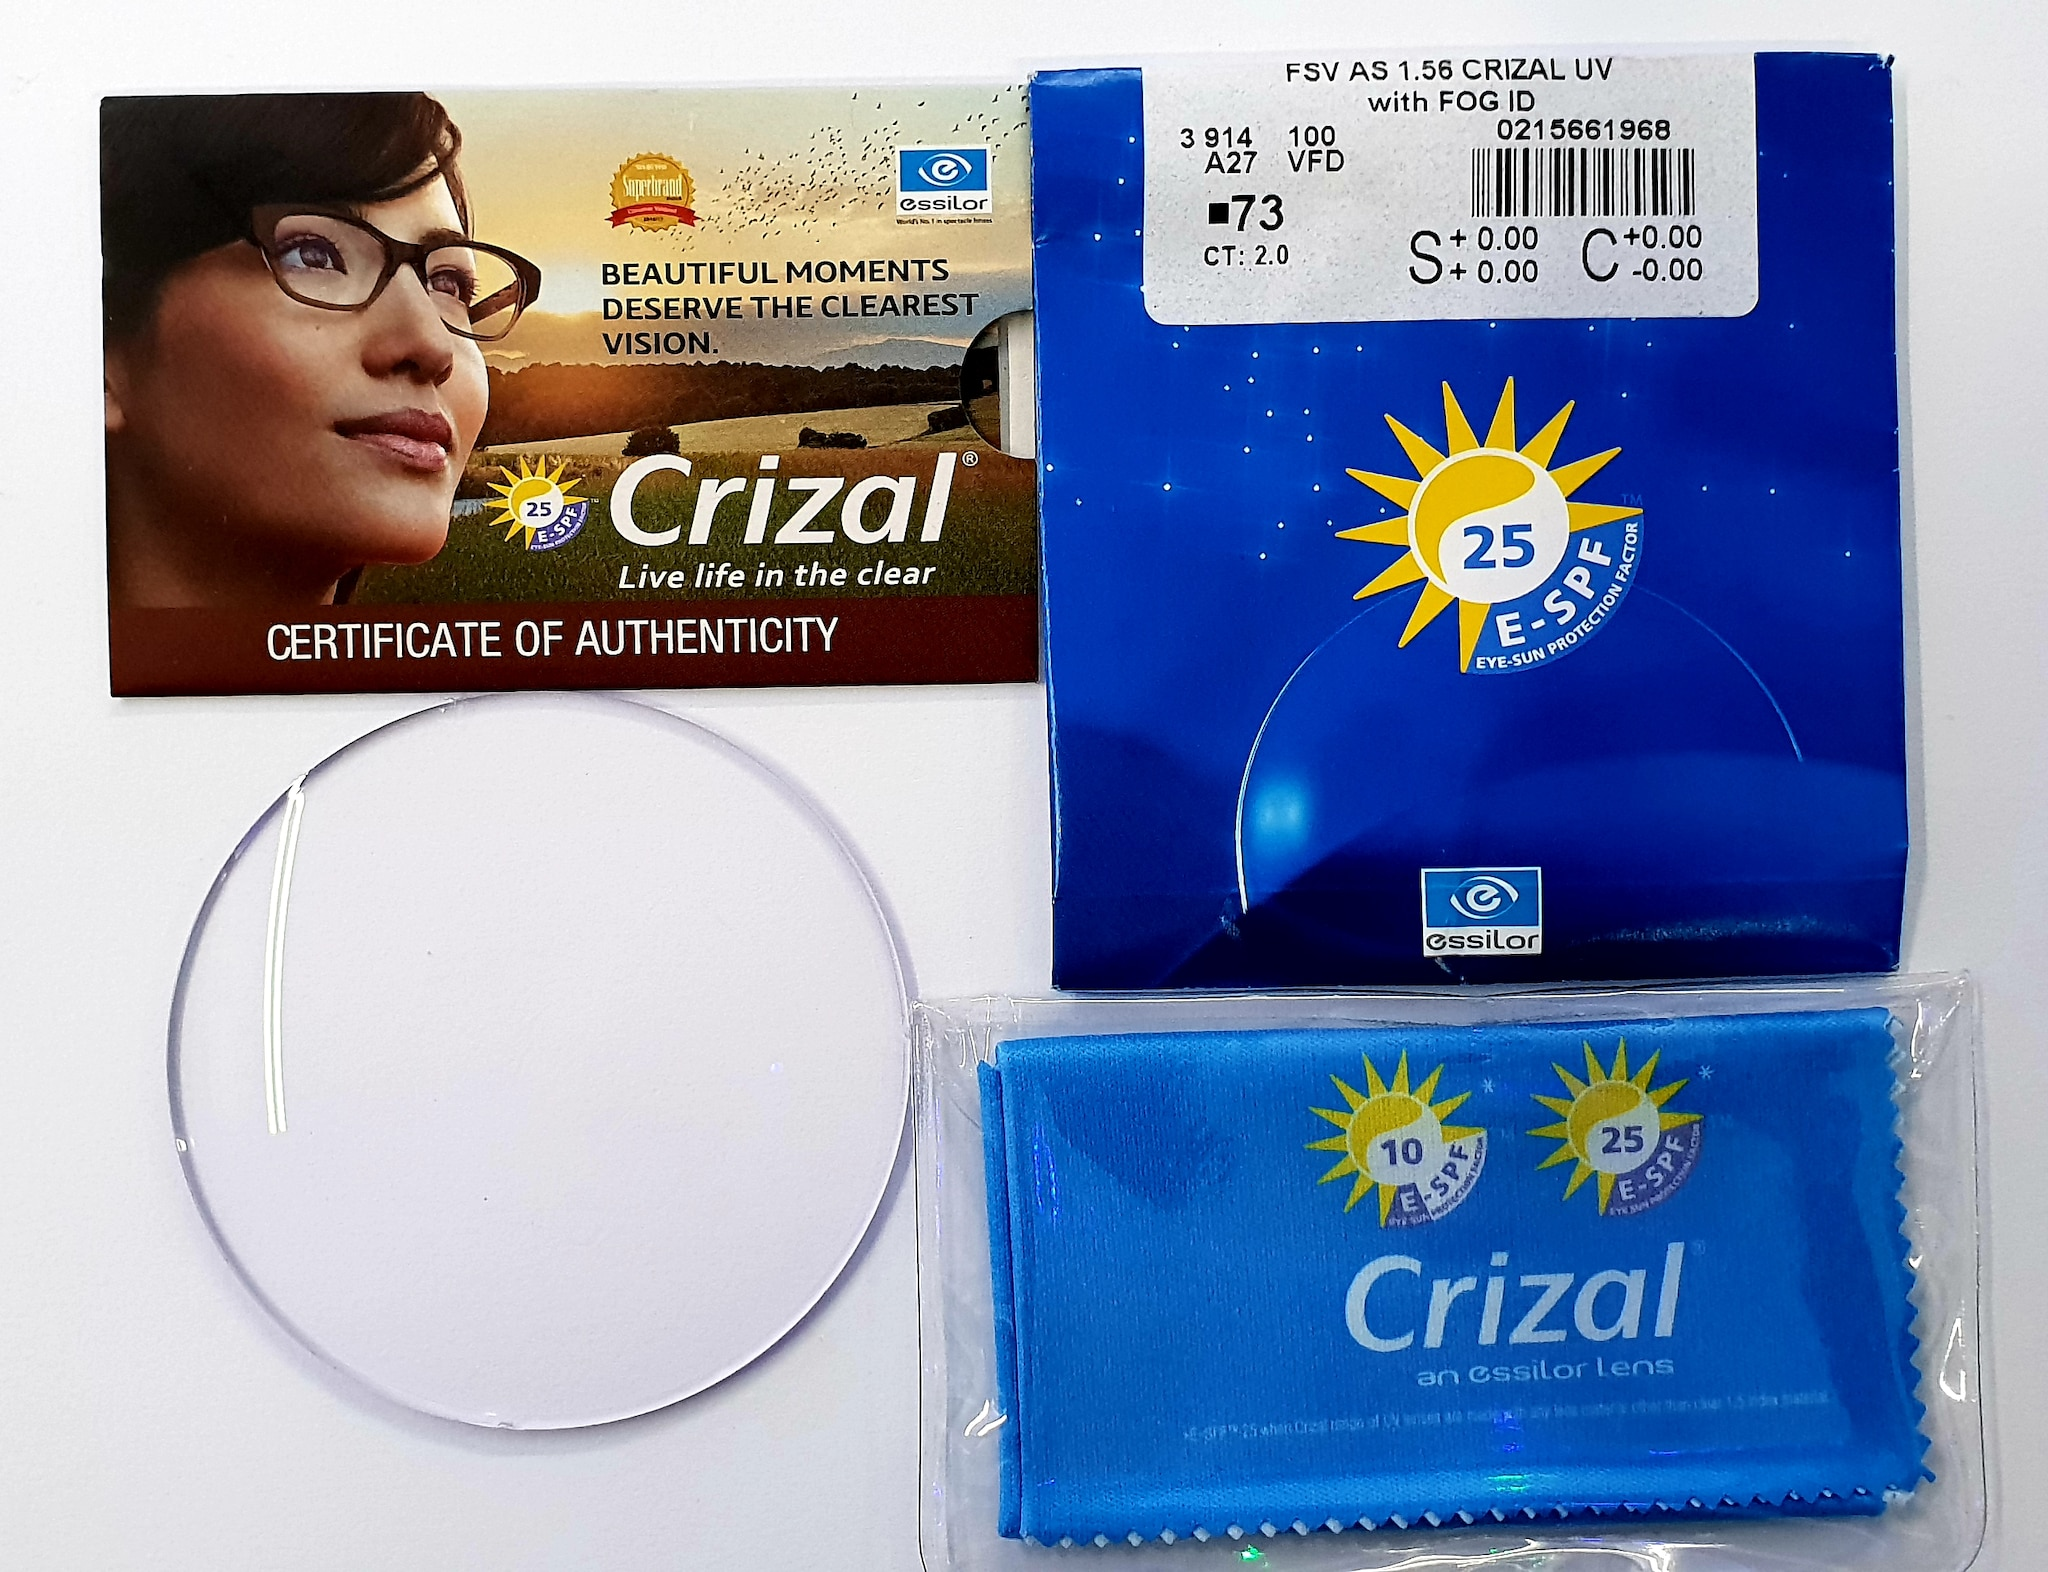 aa691a735889 ESSILOR BRAND CR-PLASTIC CRIZAL PREVENCIA LENS (Best Protection From  Harmful Blue-Violet Light) - BRAND SINGLE VISION LENSES - Clarity Optics